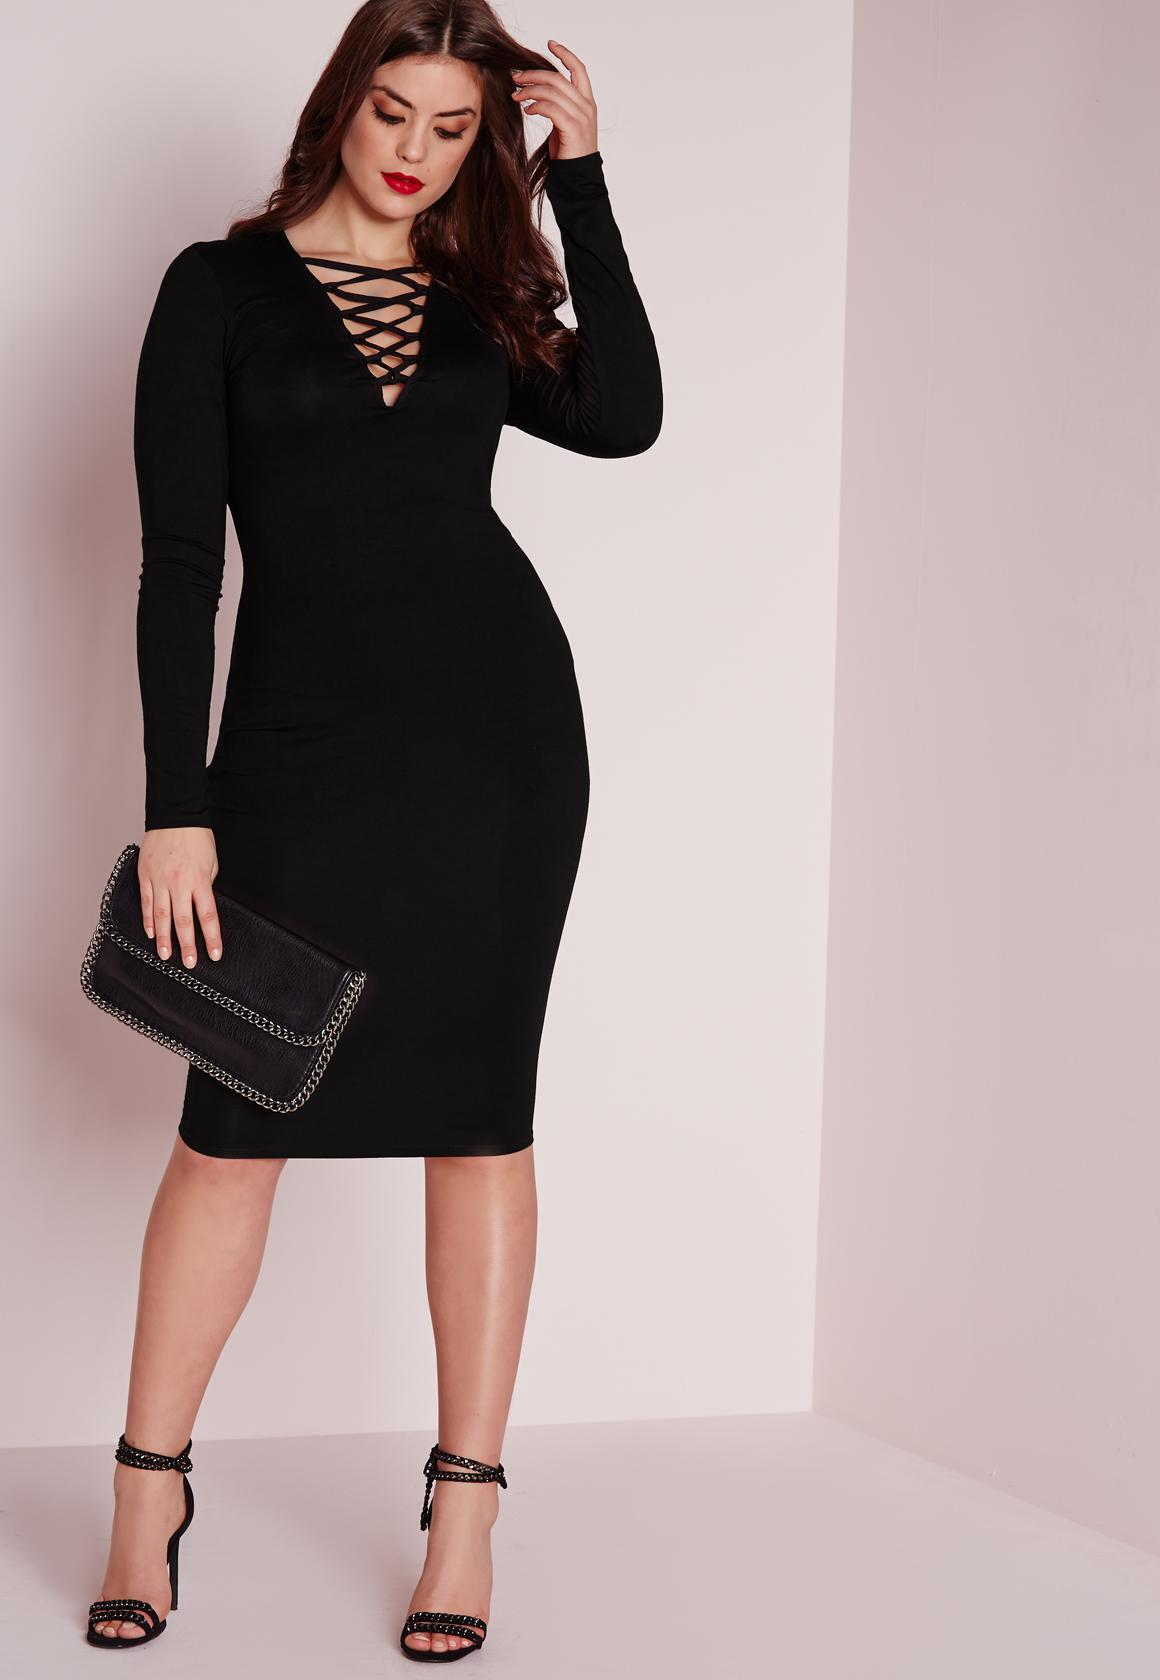 black plus size dress with sleeves 2